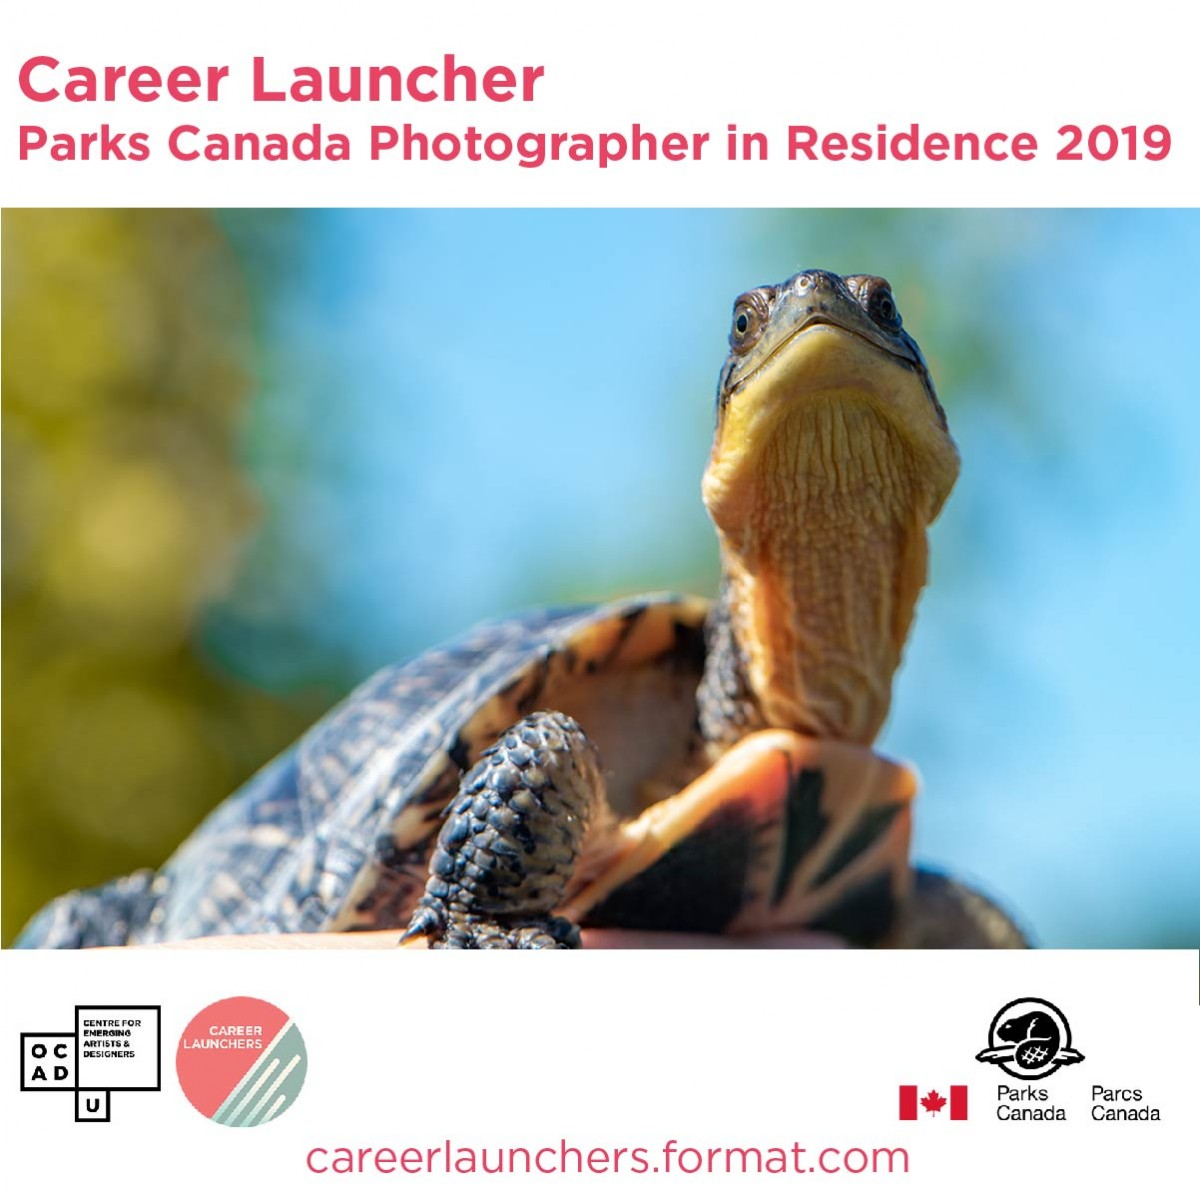 Call for Applications - Parks Canada Photographer in Residence